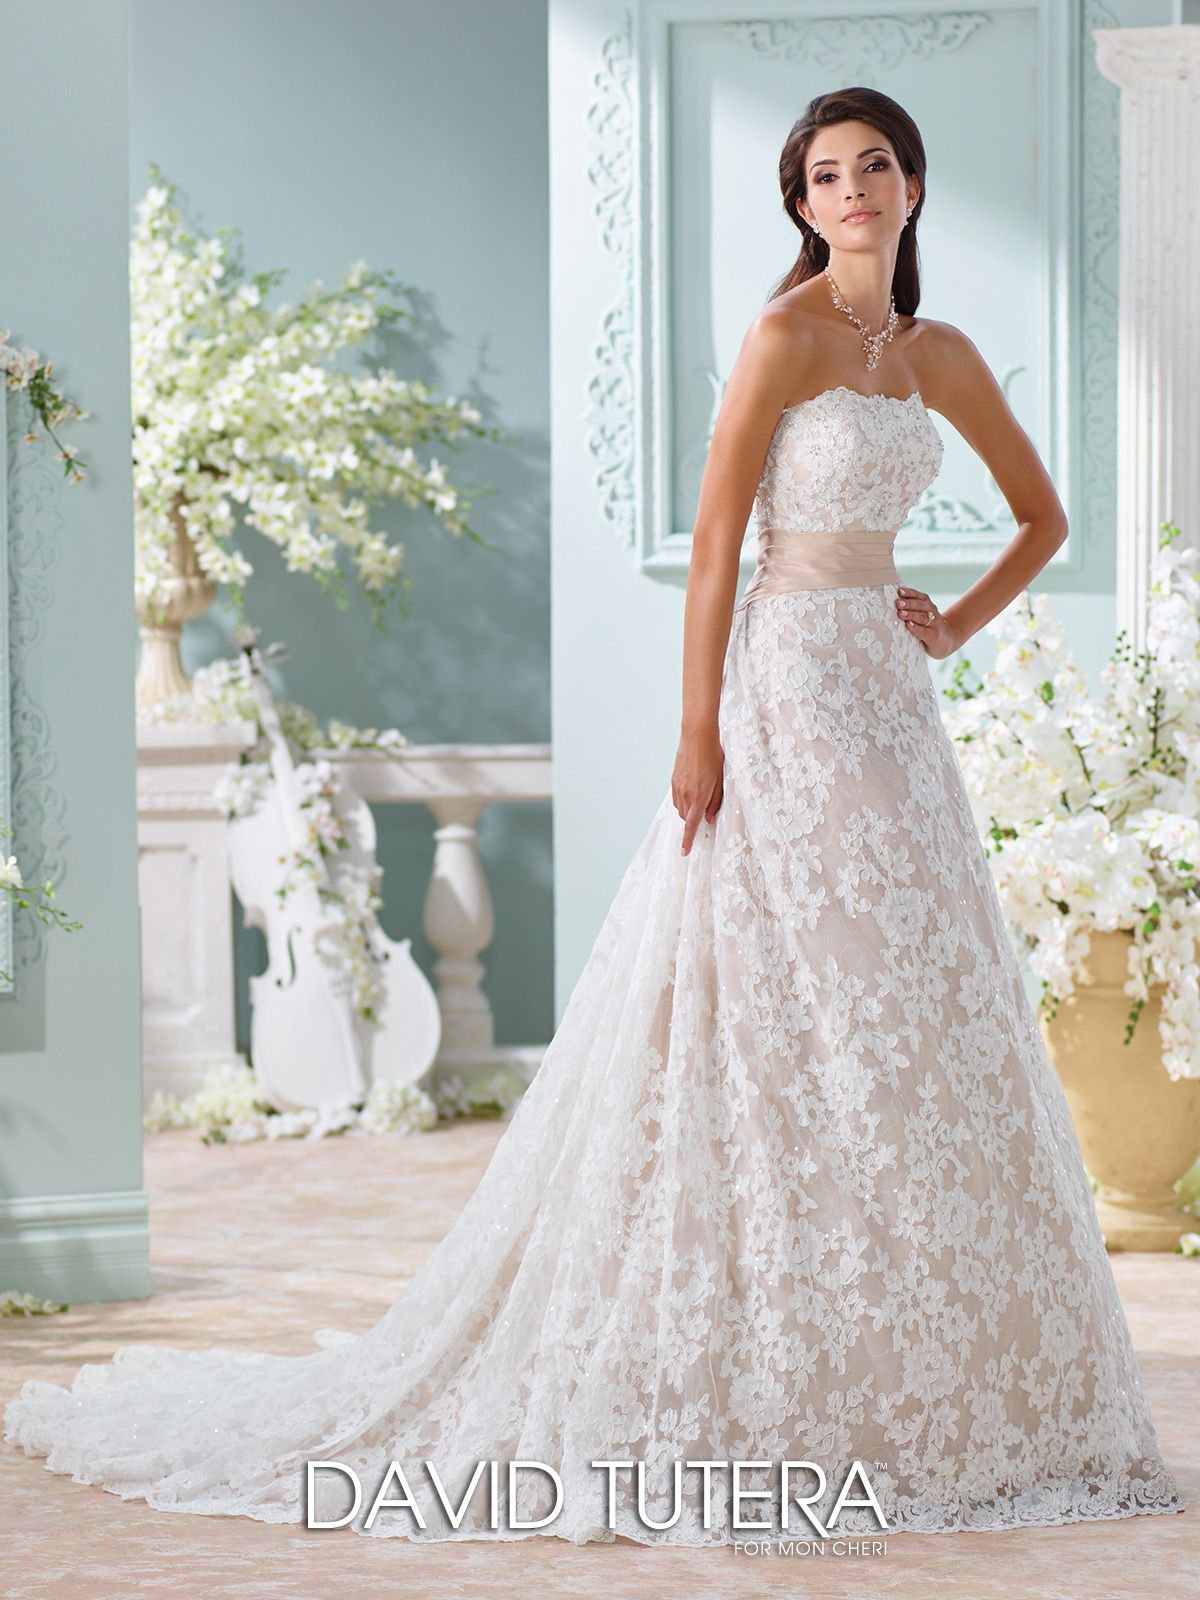 Unique wedding dresses fall 2018 martin thornburg pinterest strapless allover lightly hand beaded alencon lace tulle and memory taffeta a line gown with scalloped lace neckline pleated taffeta natural waistband junglespirit